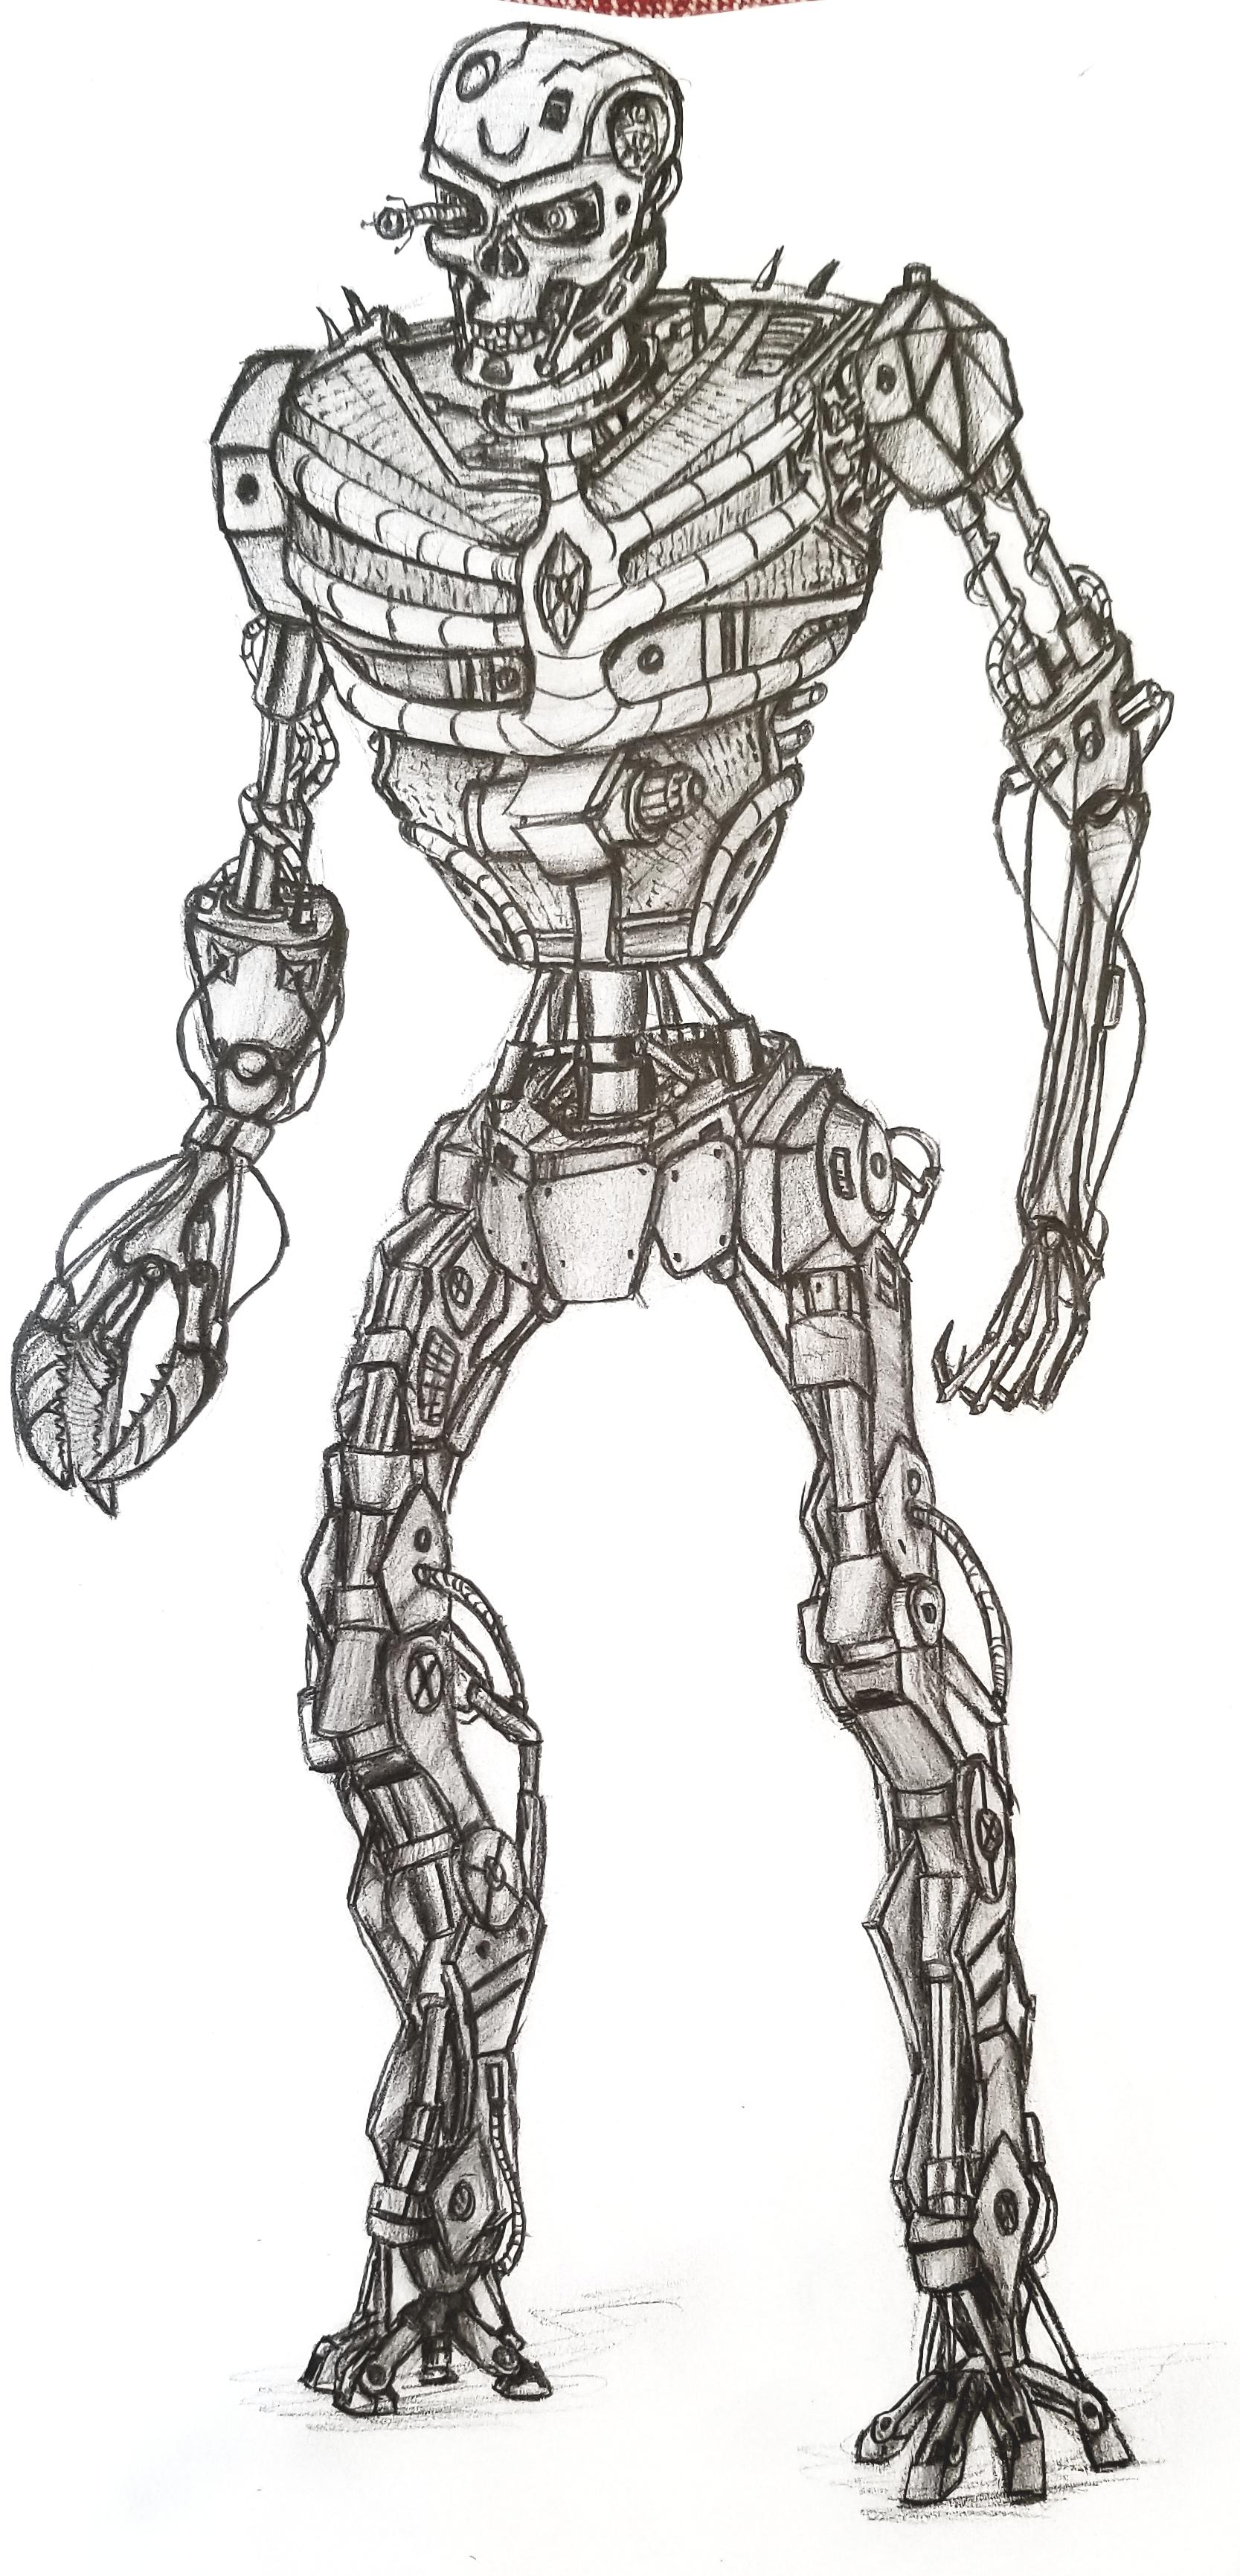 I tried to draw different version of terminator : drawing